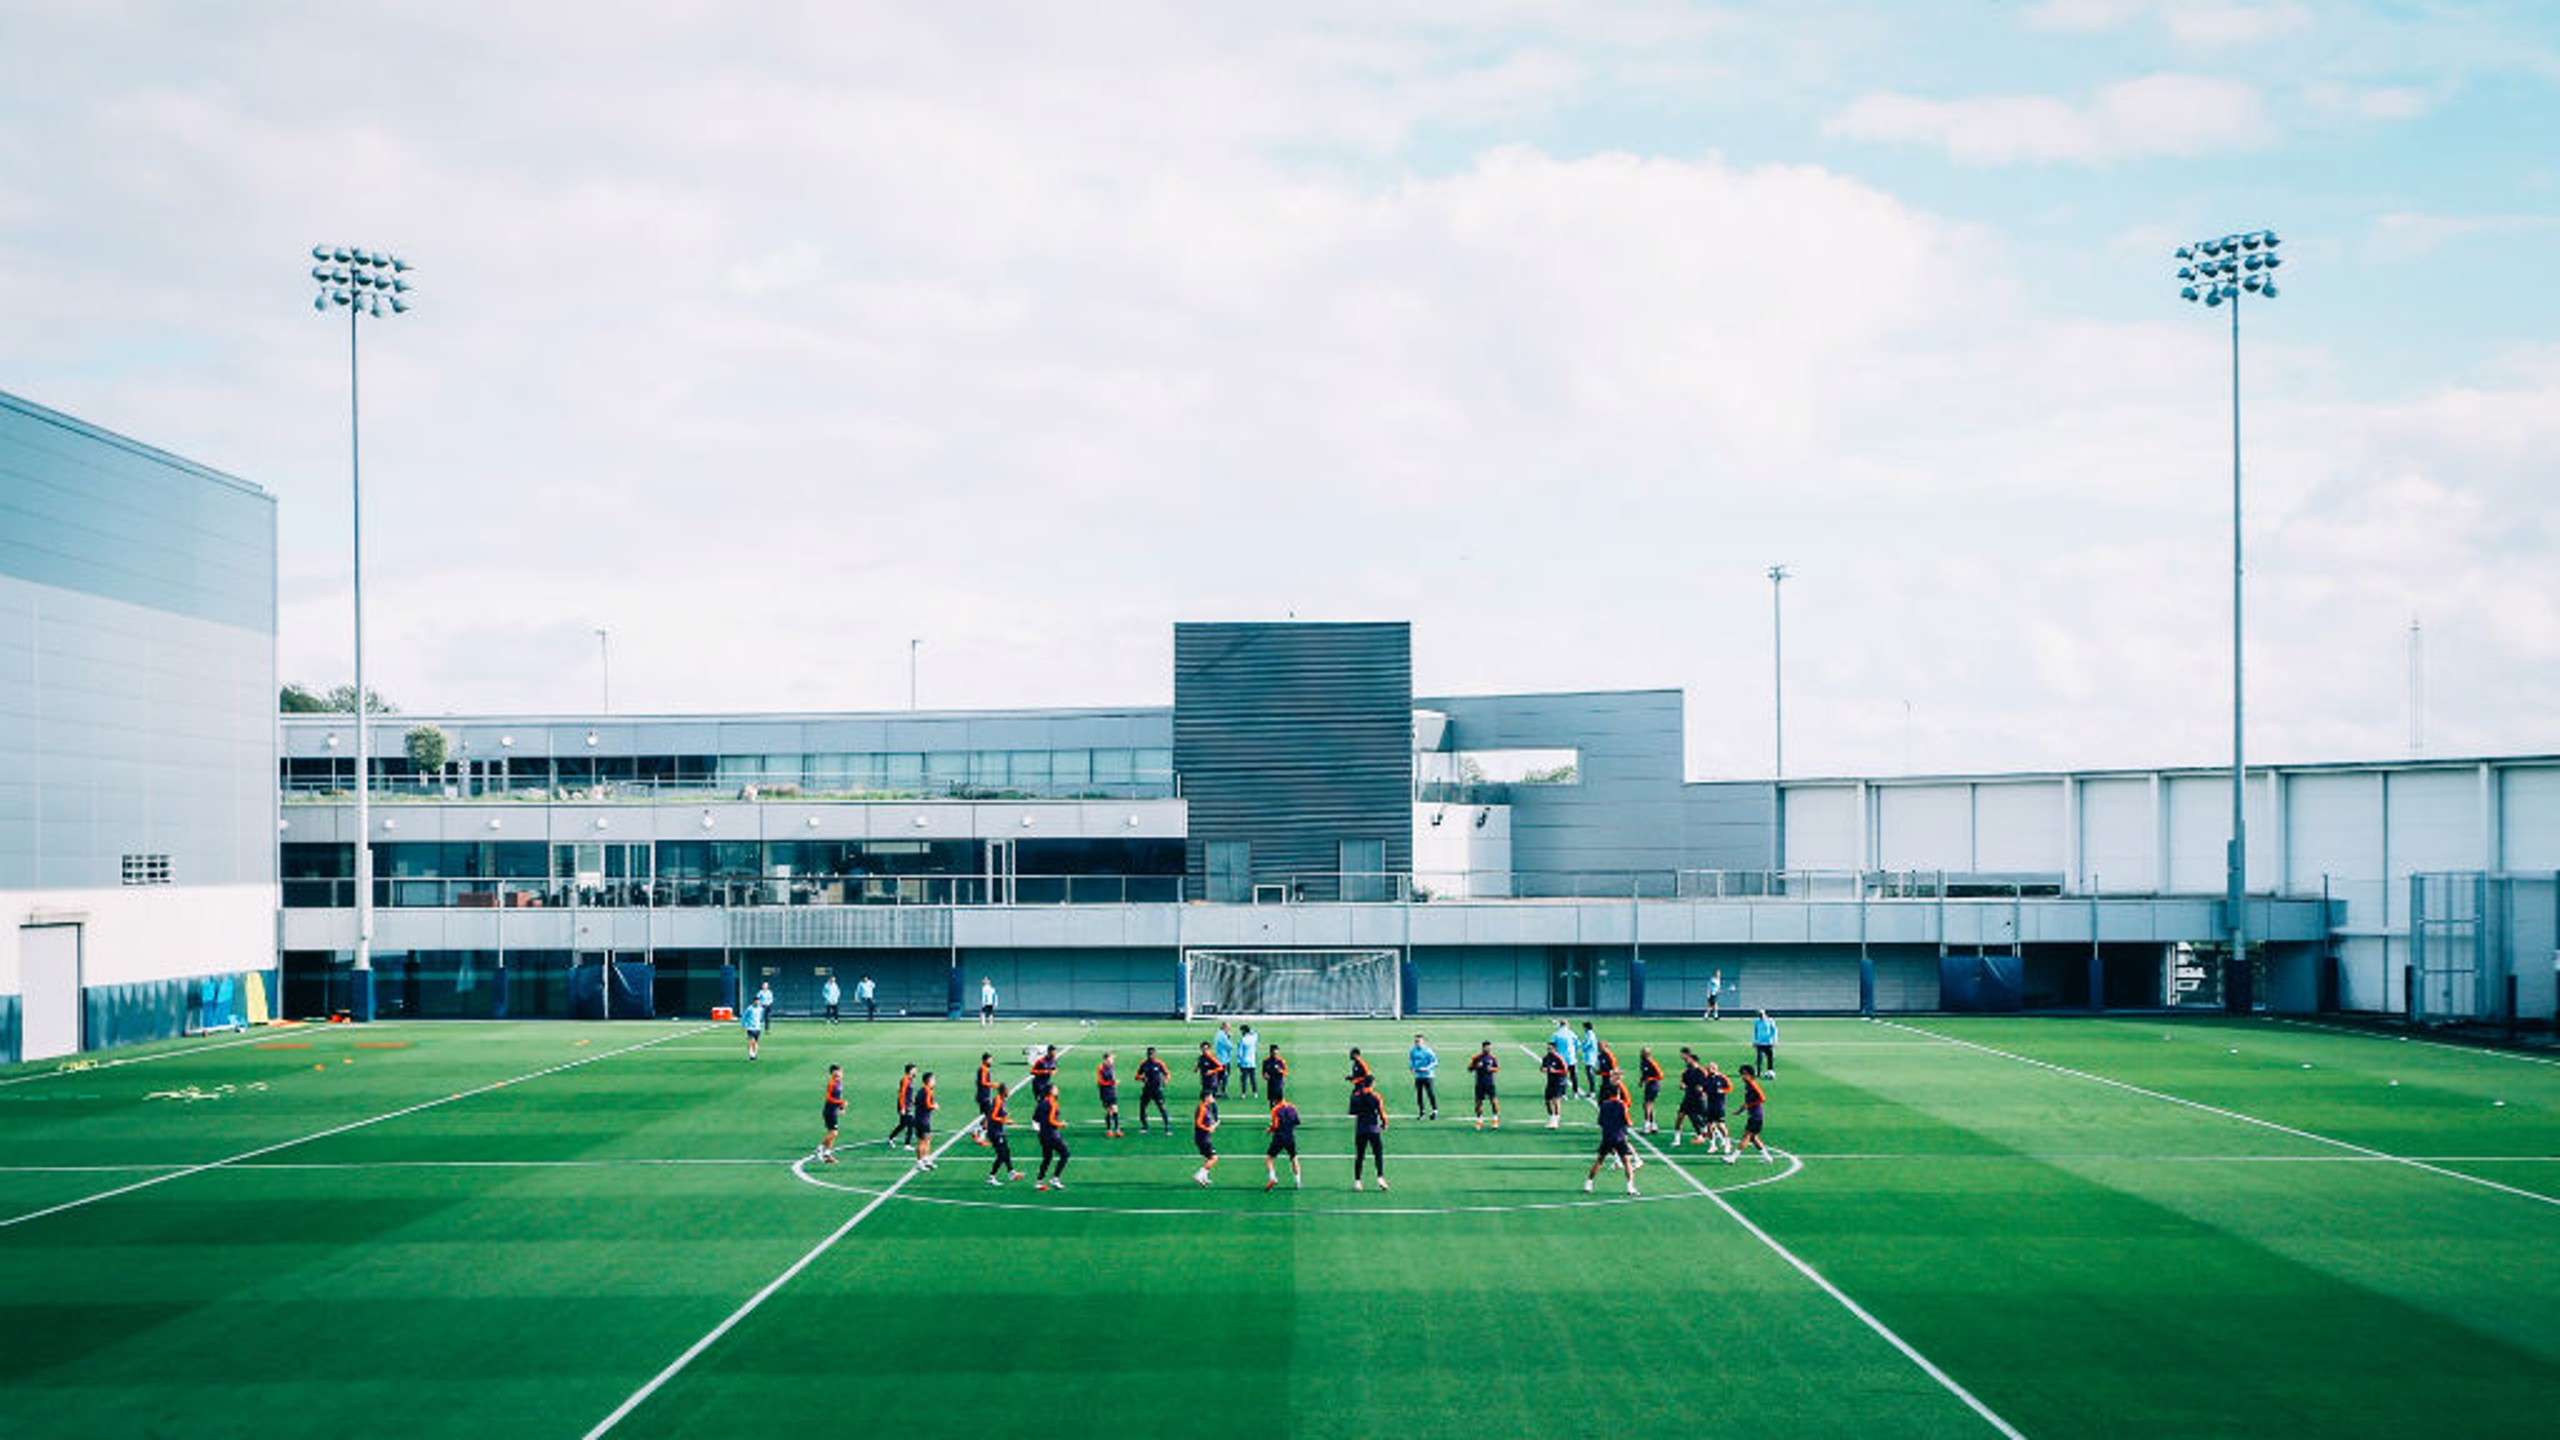 TRAINING: Gearing up for the Champions League.